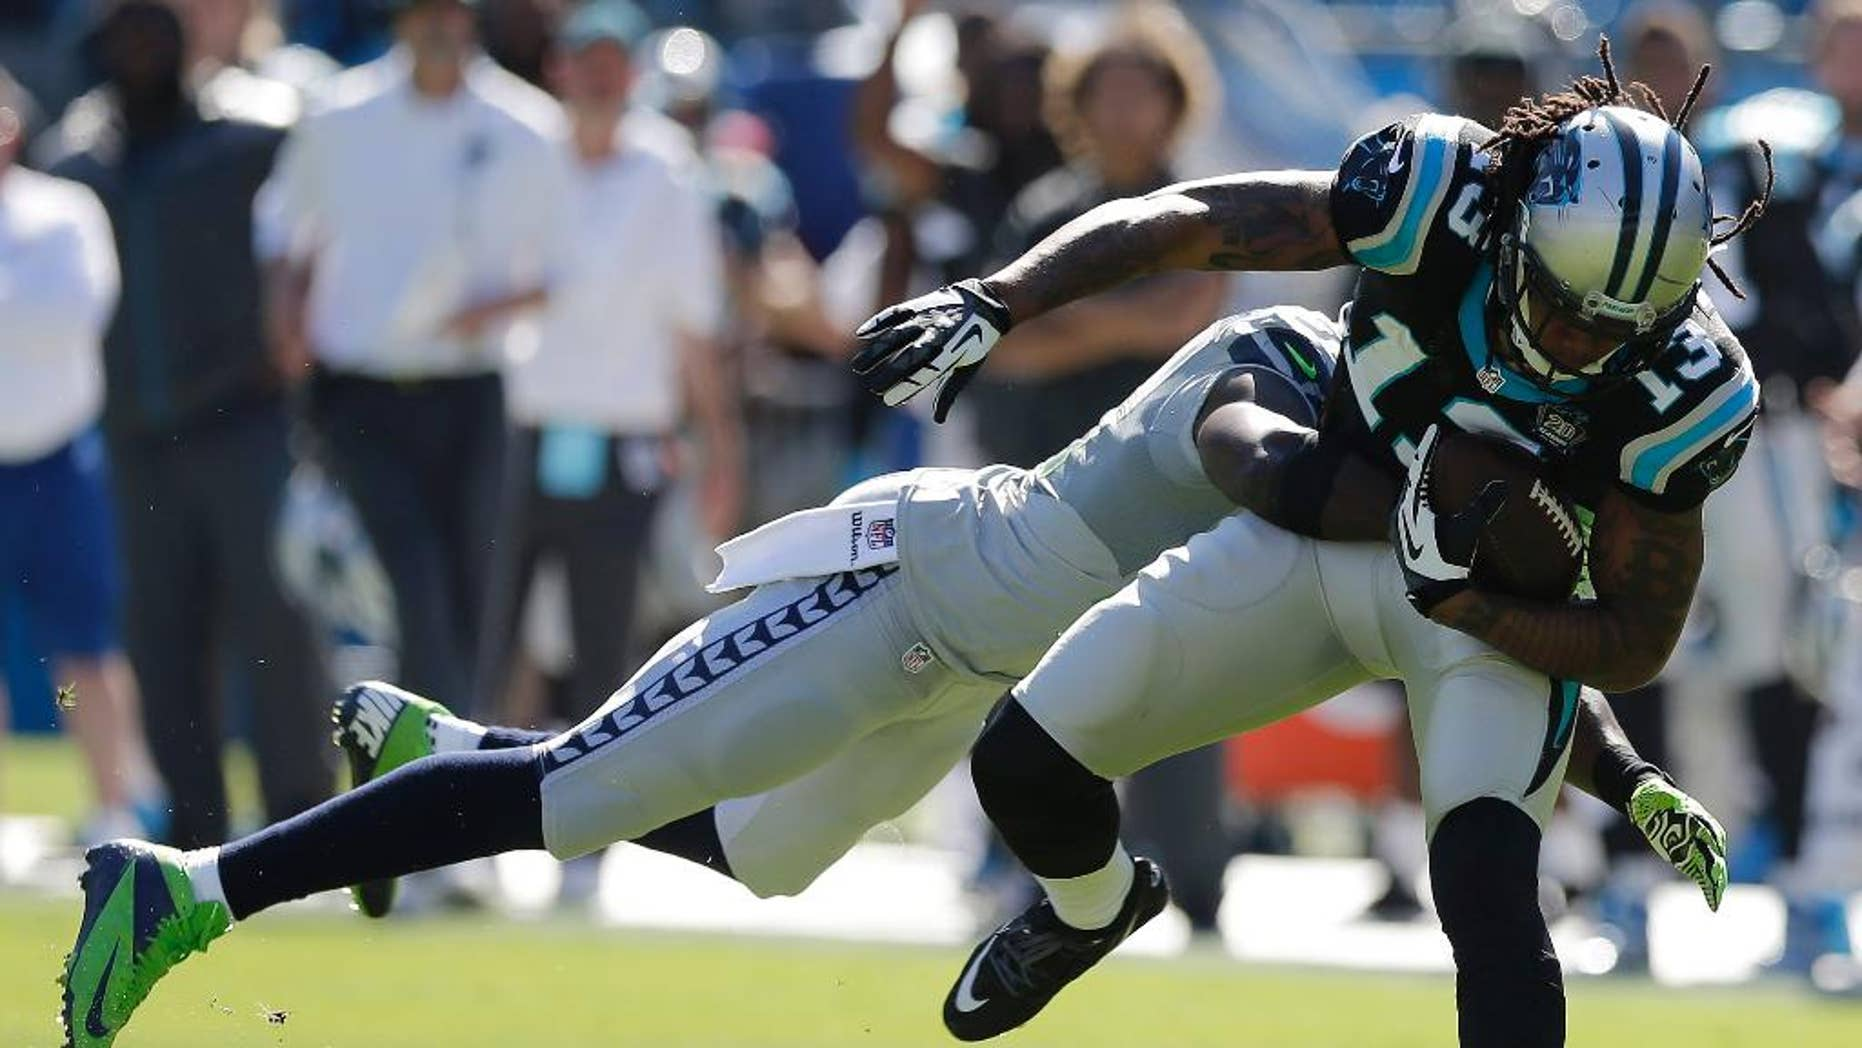 Carolina Panthers wide receiver Kelvin Benjamin (13) moves as Seattle Seahawks strong safety Kam Chancellor (31) tackles during the first half of an NFL football game, Sunday, Oct. 26, 2014, in Charlotte. (AP Photo/Chuck Burton)